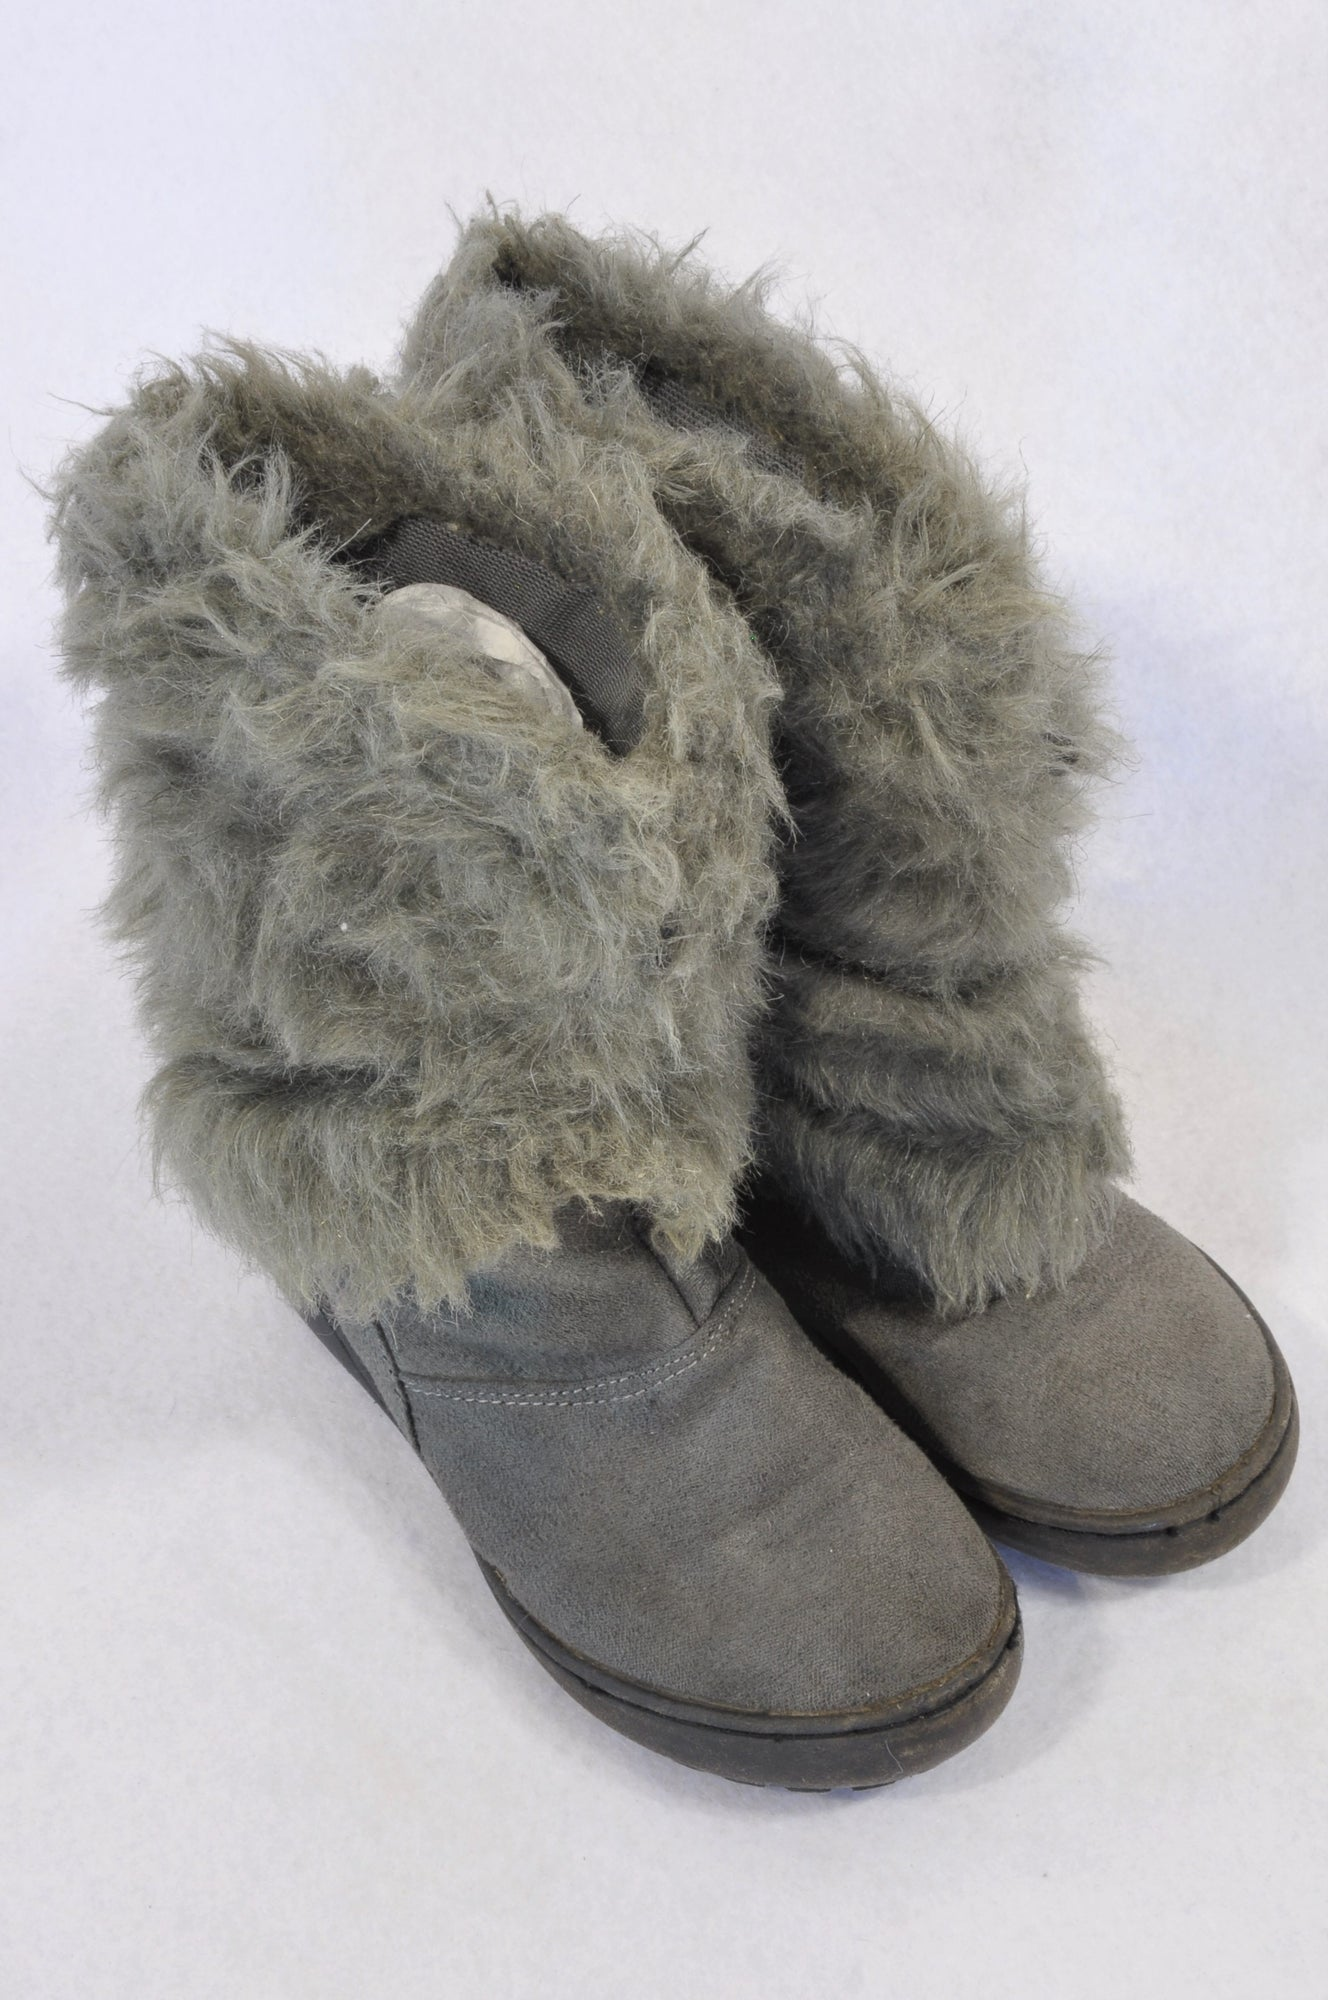 Woolworths Size 12 Grey Faux Fur Zipper Boots Girls 6-8 years